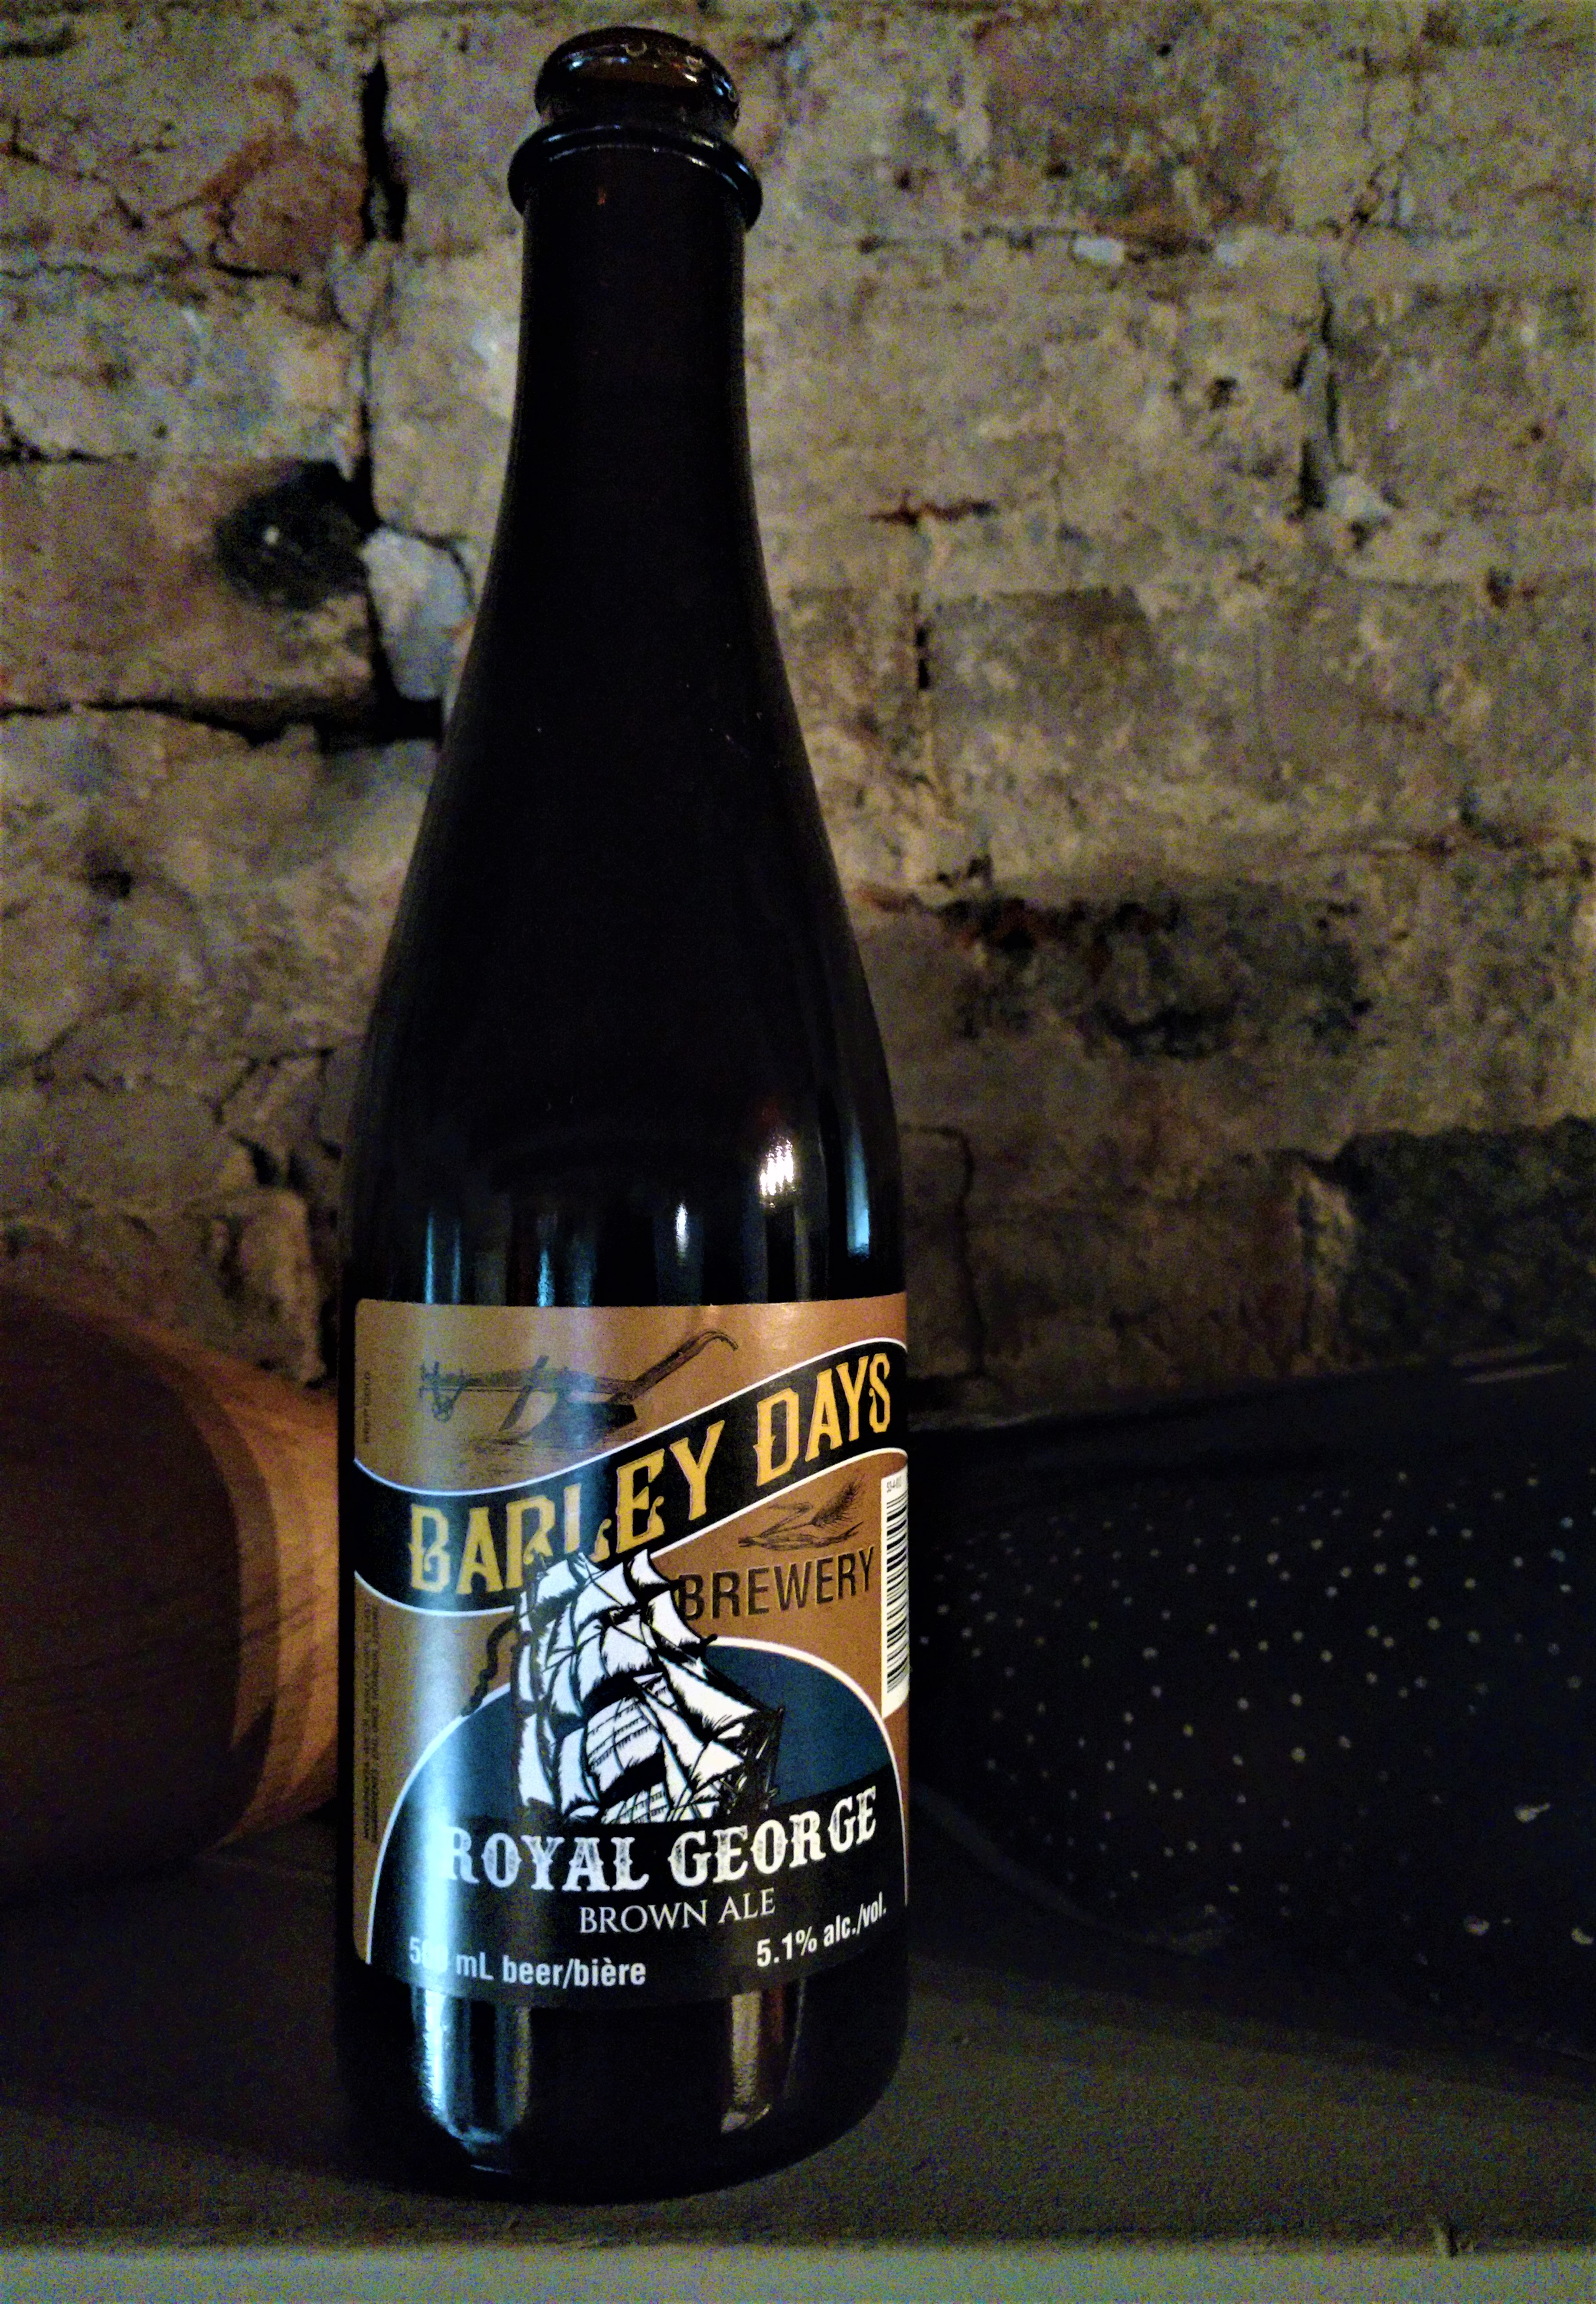 Barley Days Brewery Royal George Brown Ale